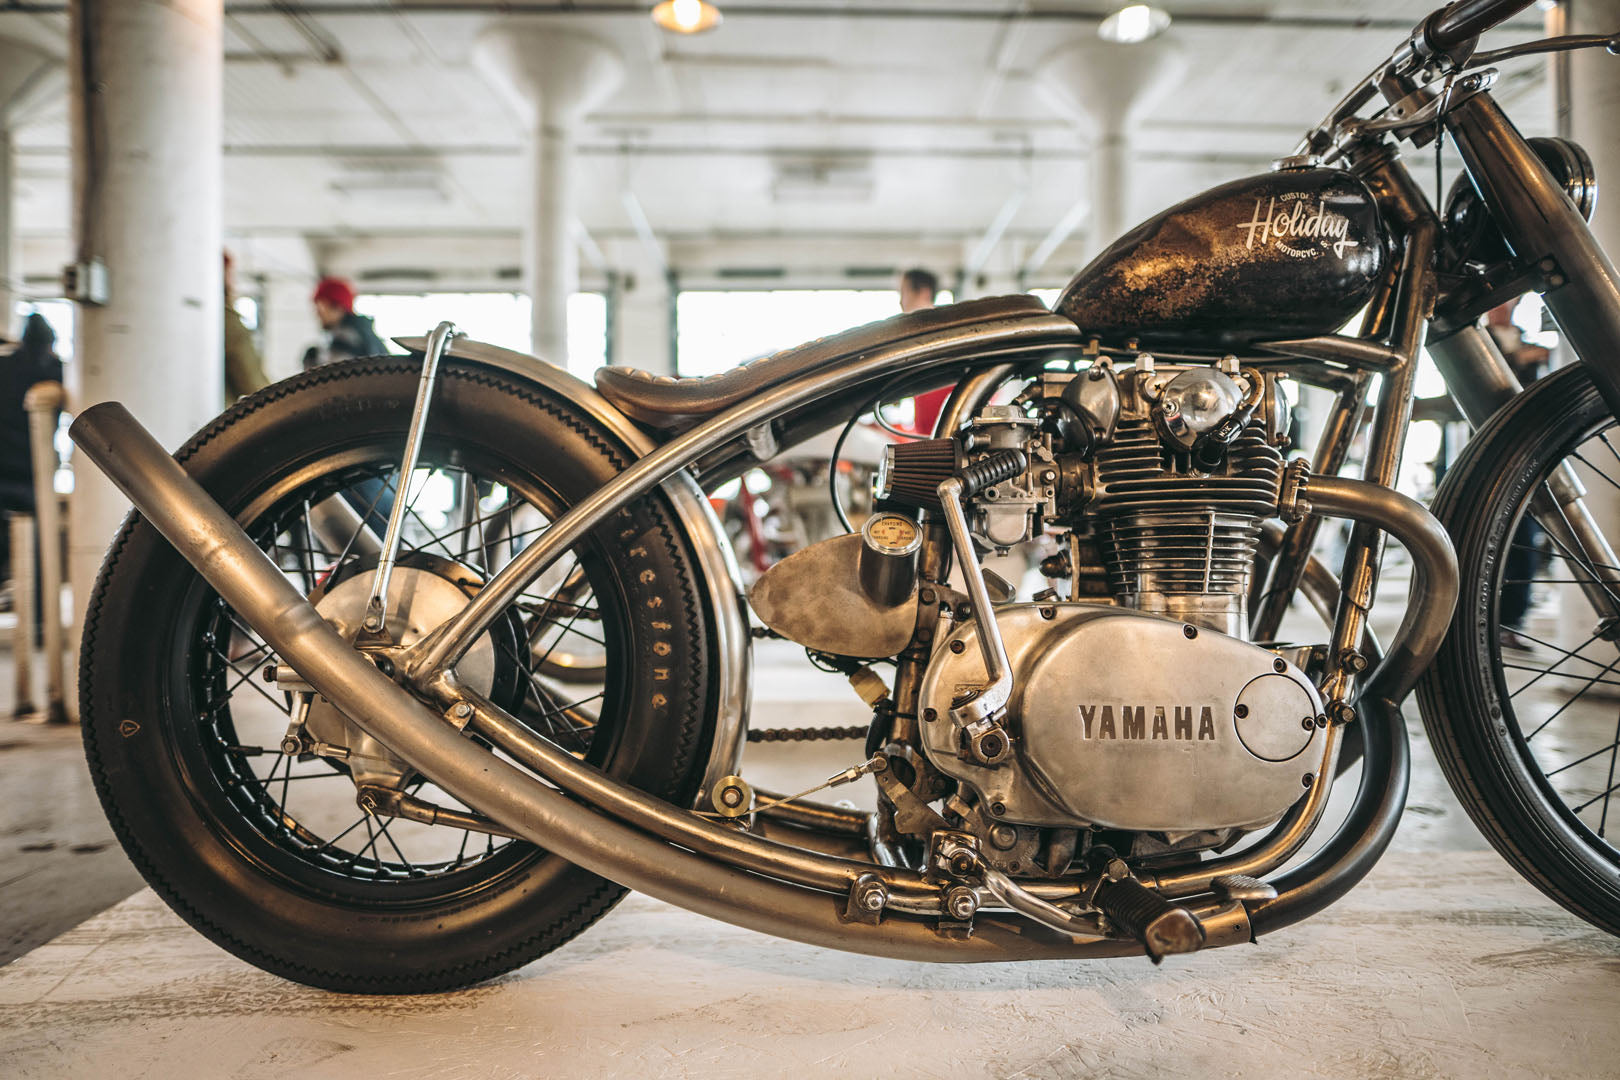 holiday cycles custom yamaha xs650 bobber